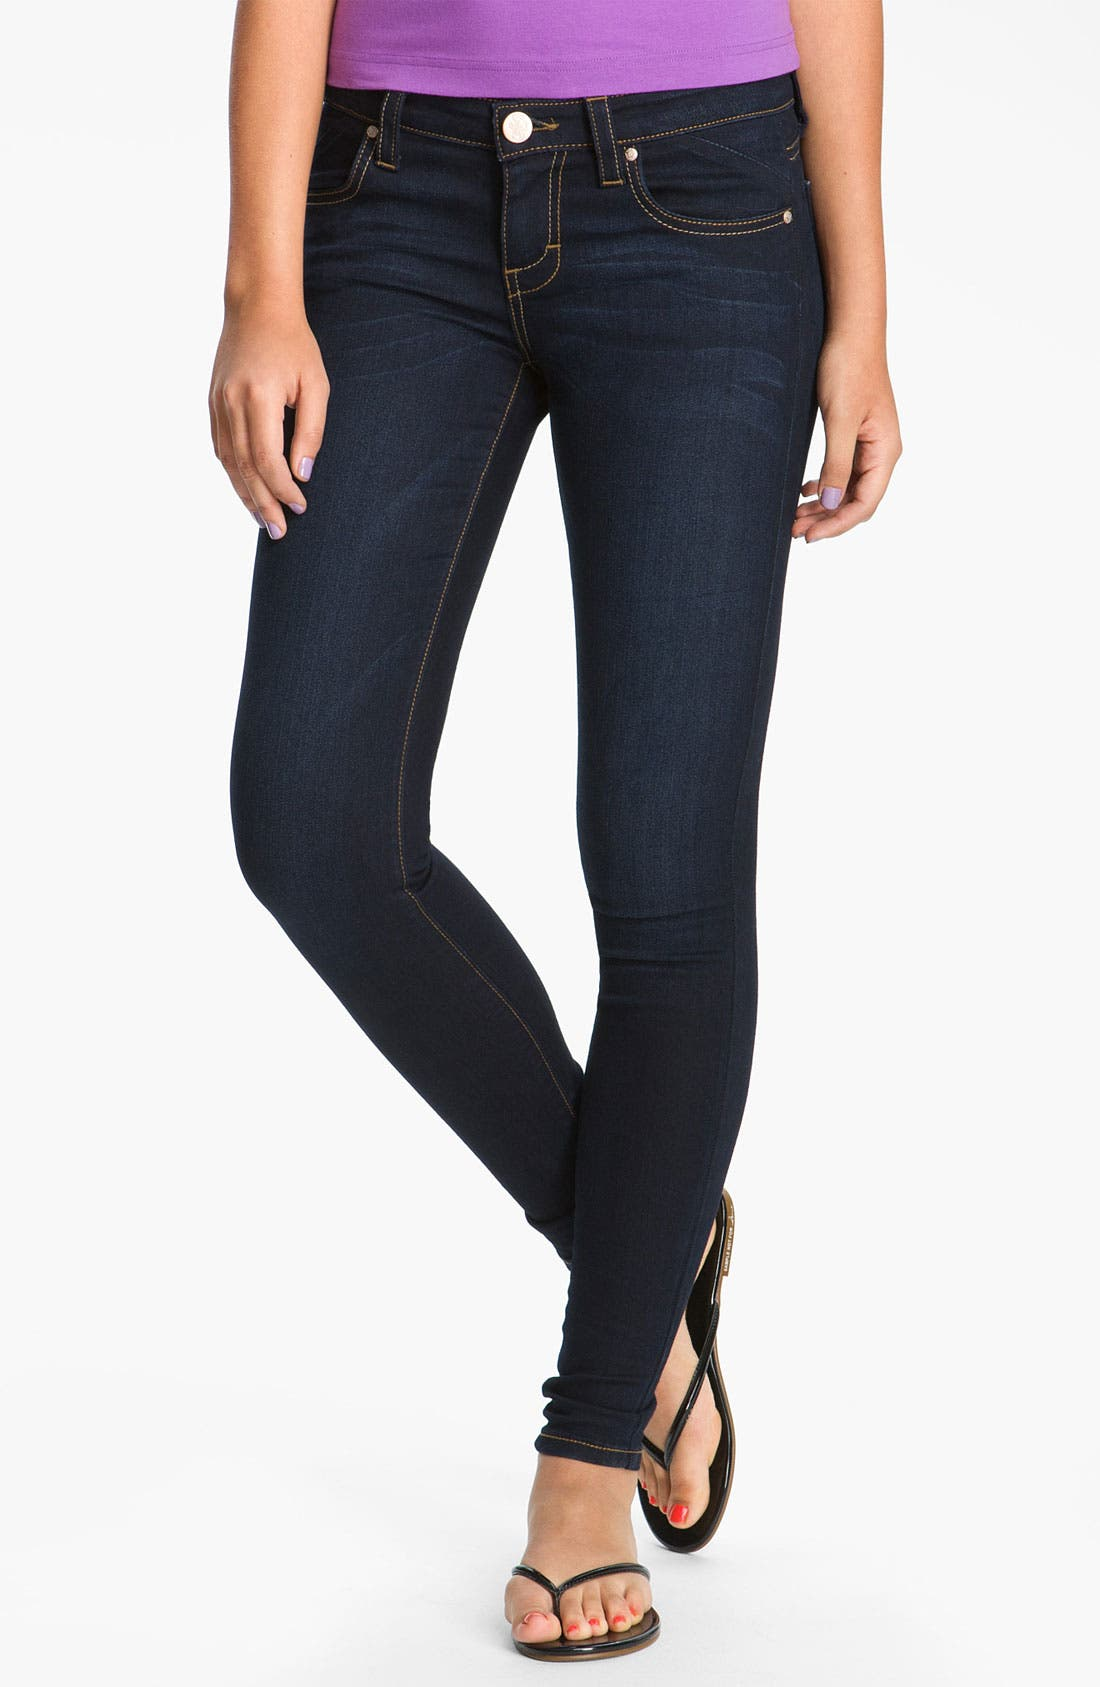 Alternate Image 1 Selected - STS Blue Skinny Jeans (Brisbane Dark) (Juniors) (Online Only)